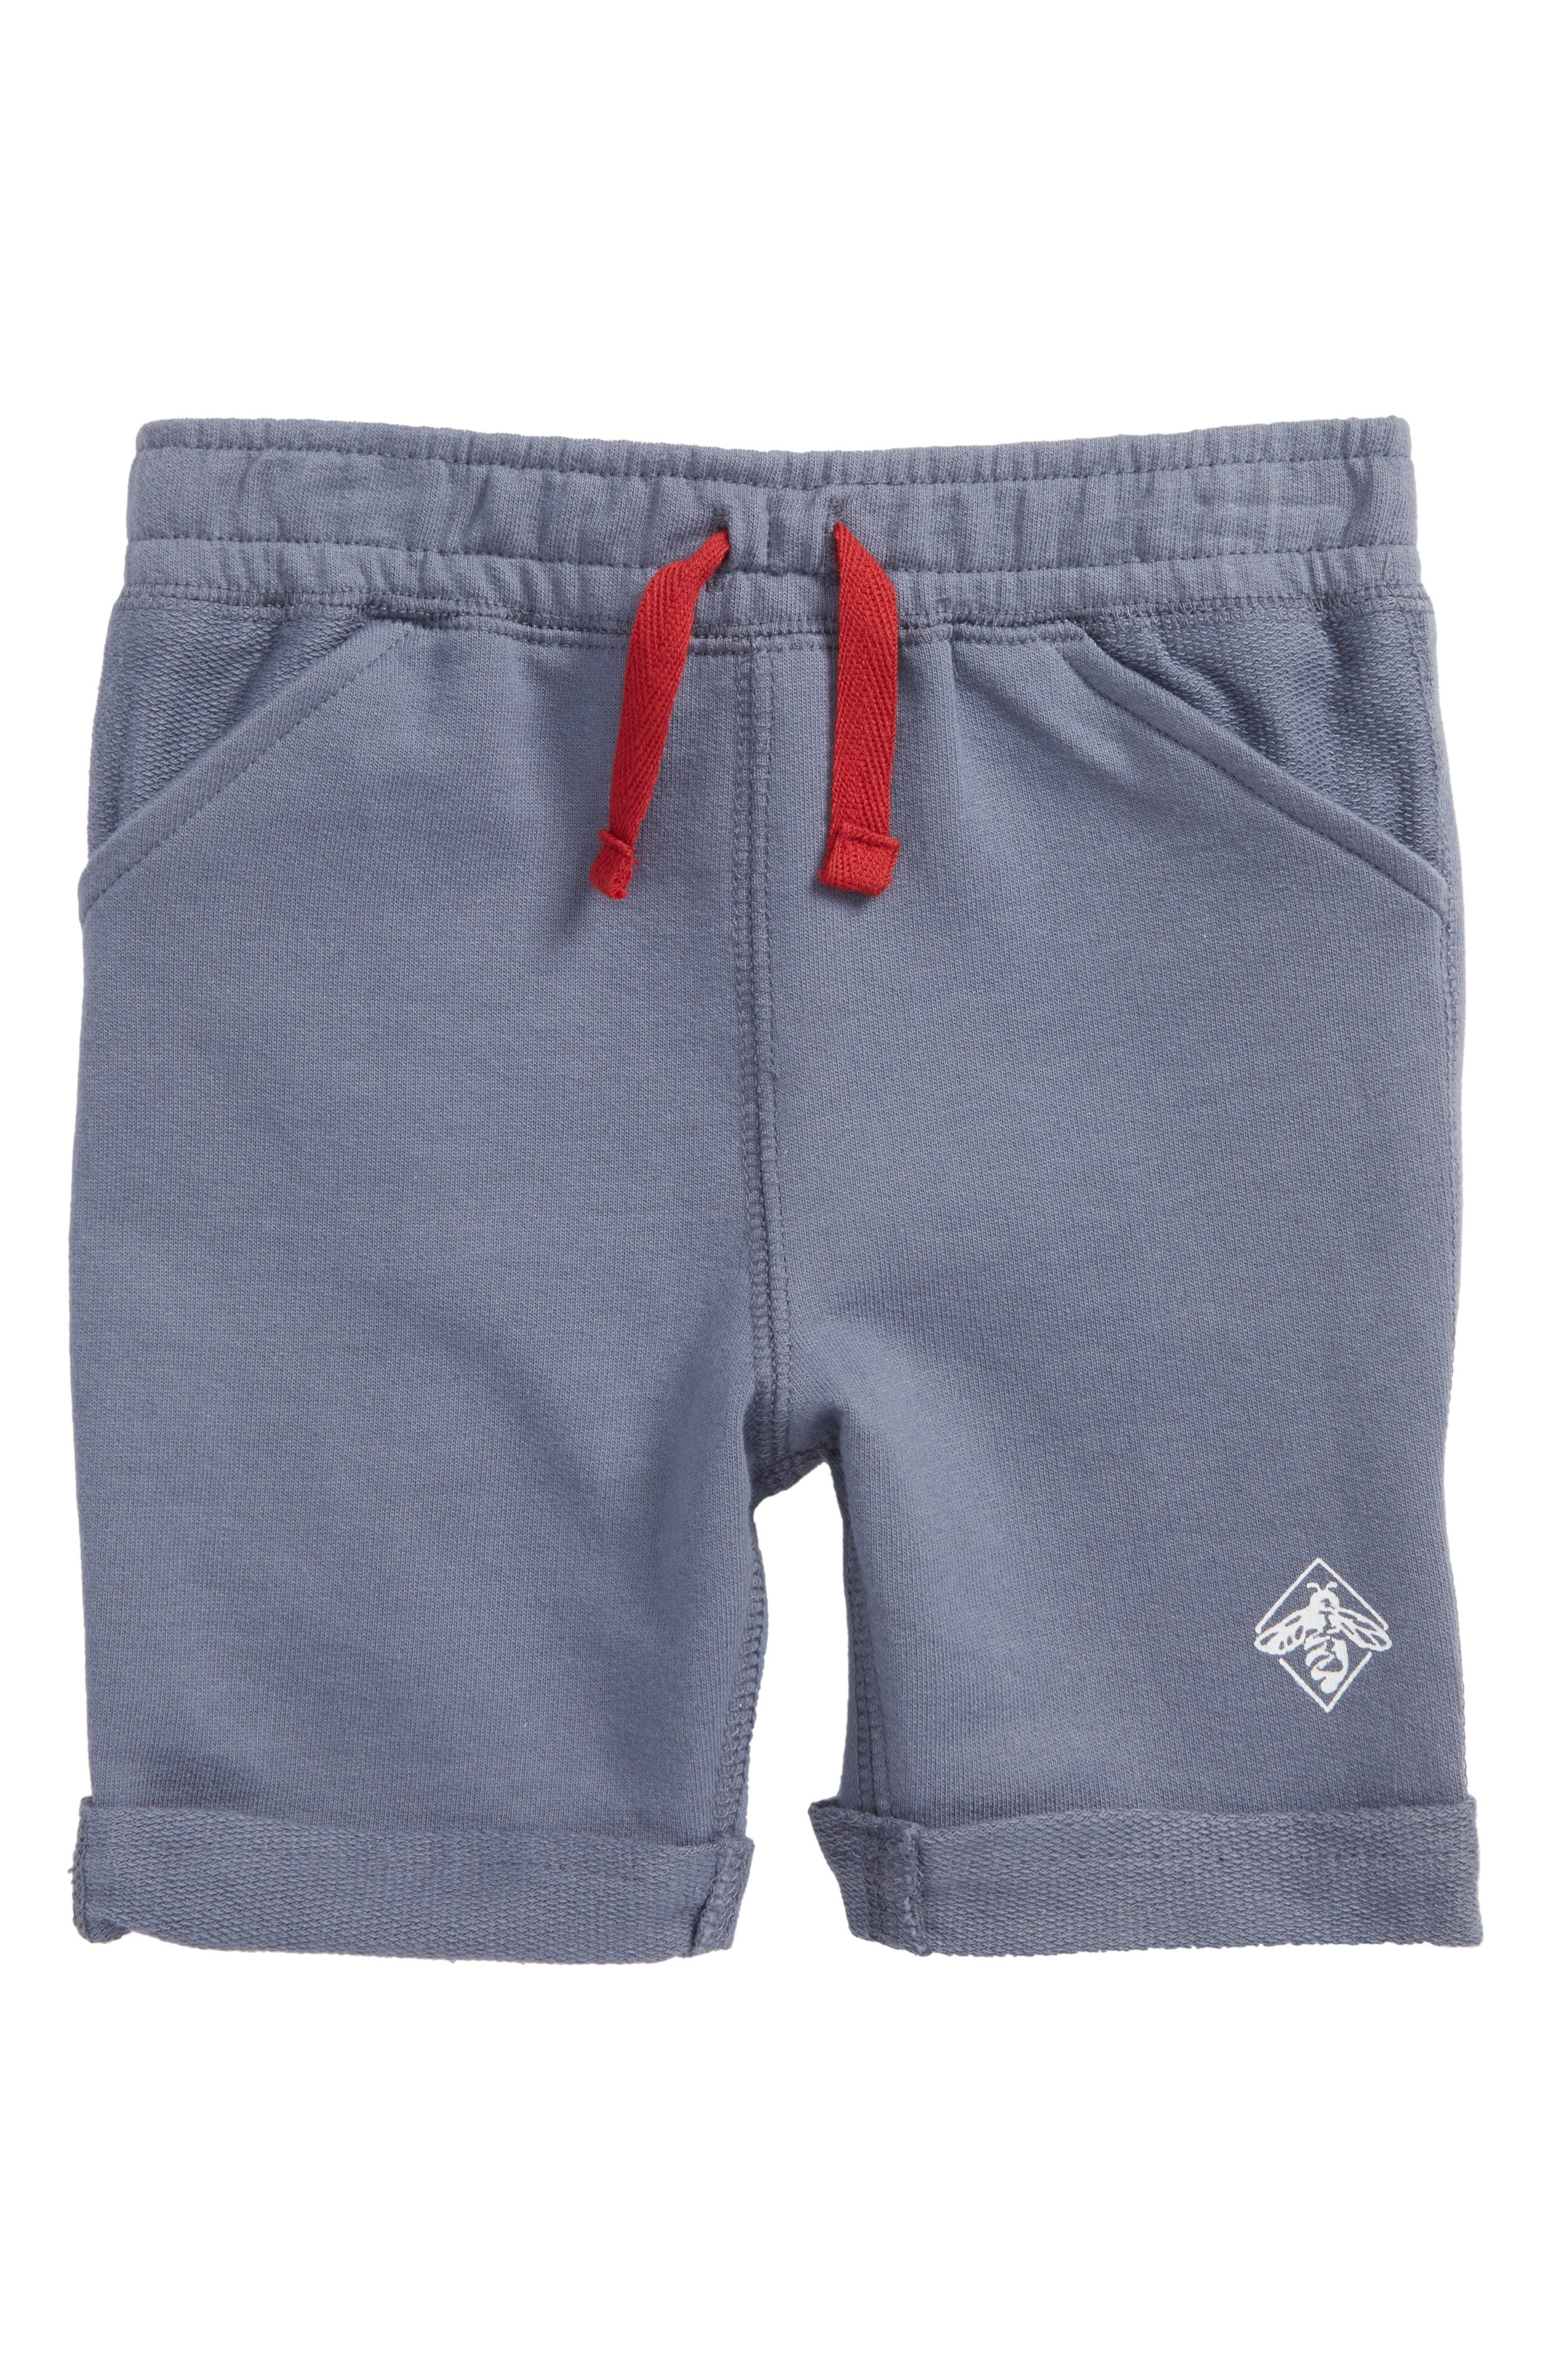 Roll Cuff French Terry Shorts,                             Main thumbnail 1, color,                             434